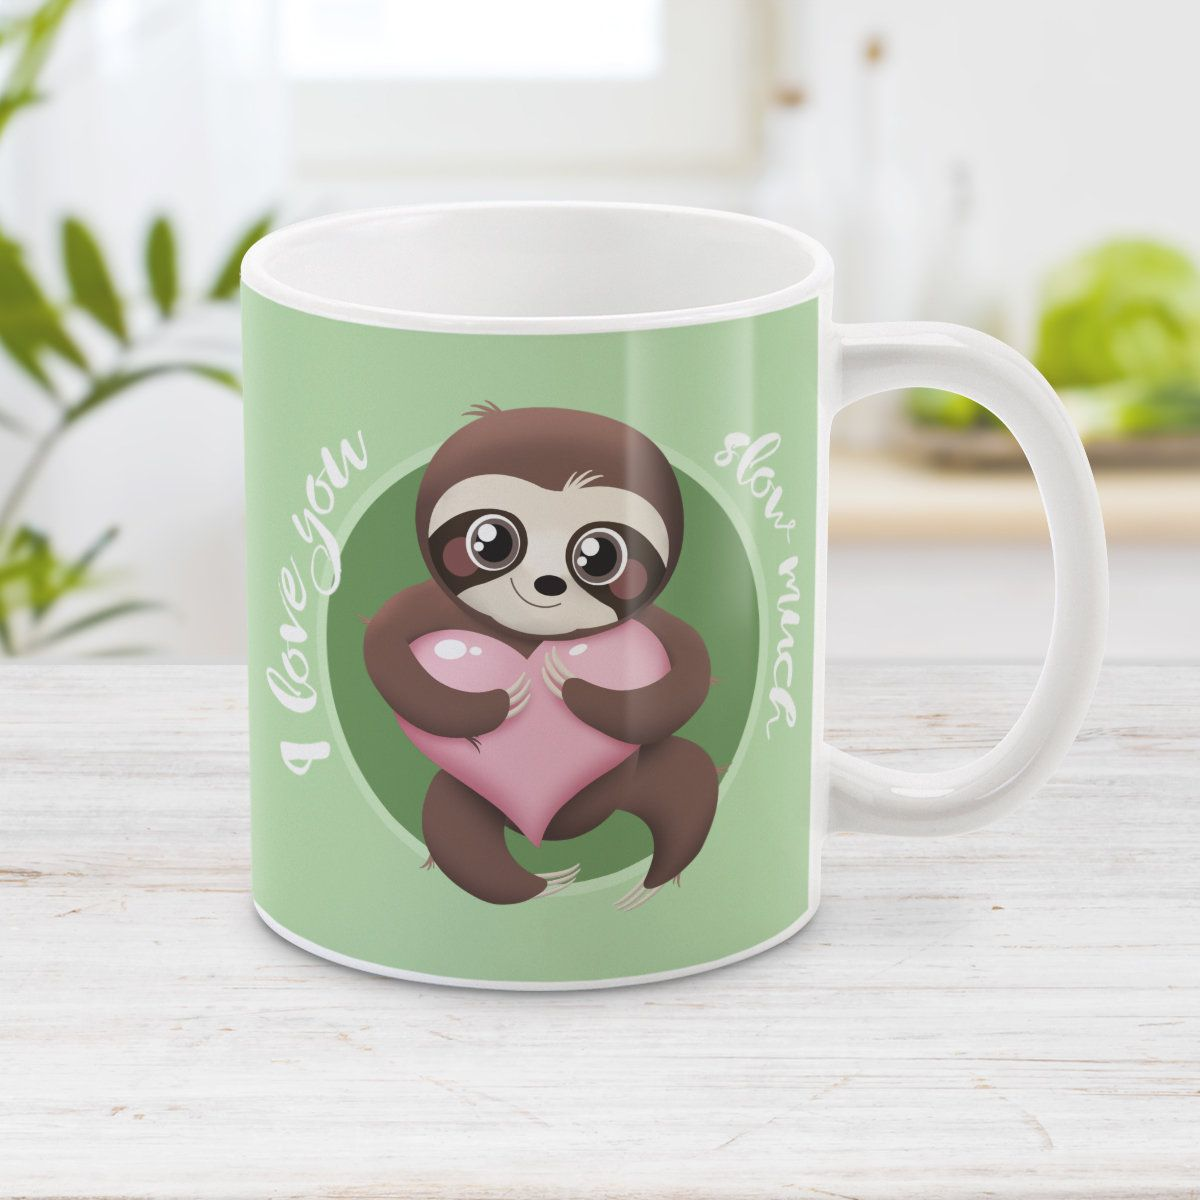 I Love You Slow Much, Cute Sloth Mug, pink heart green